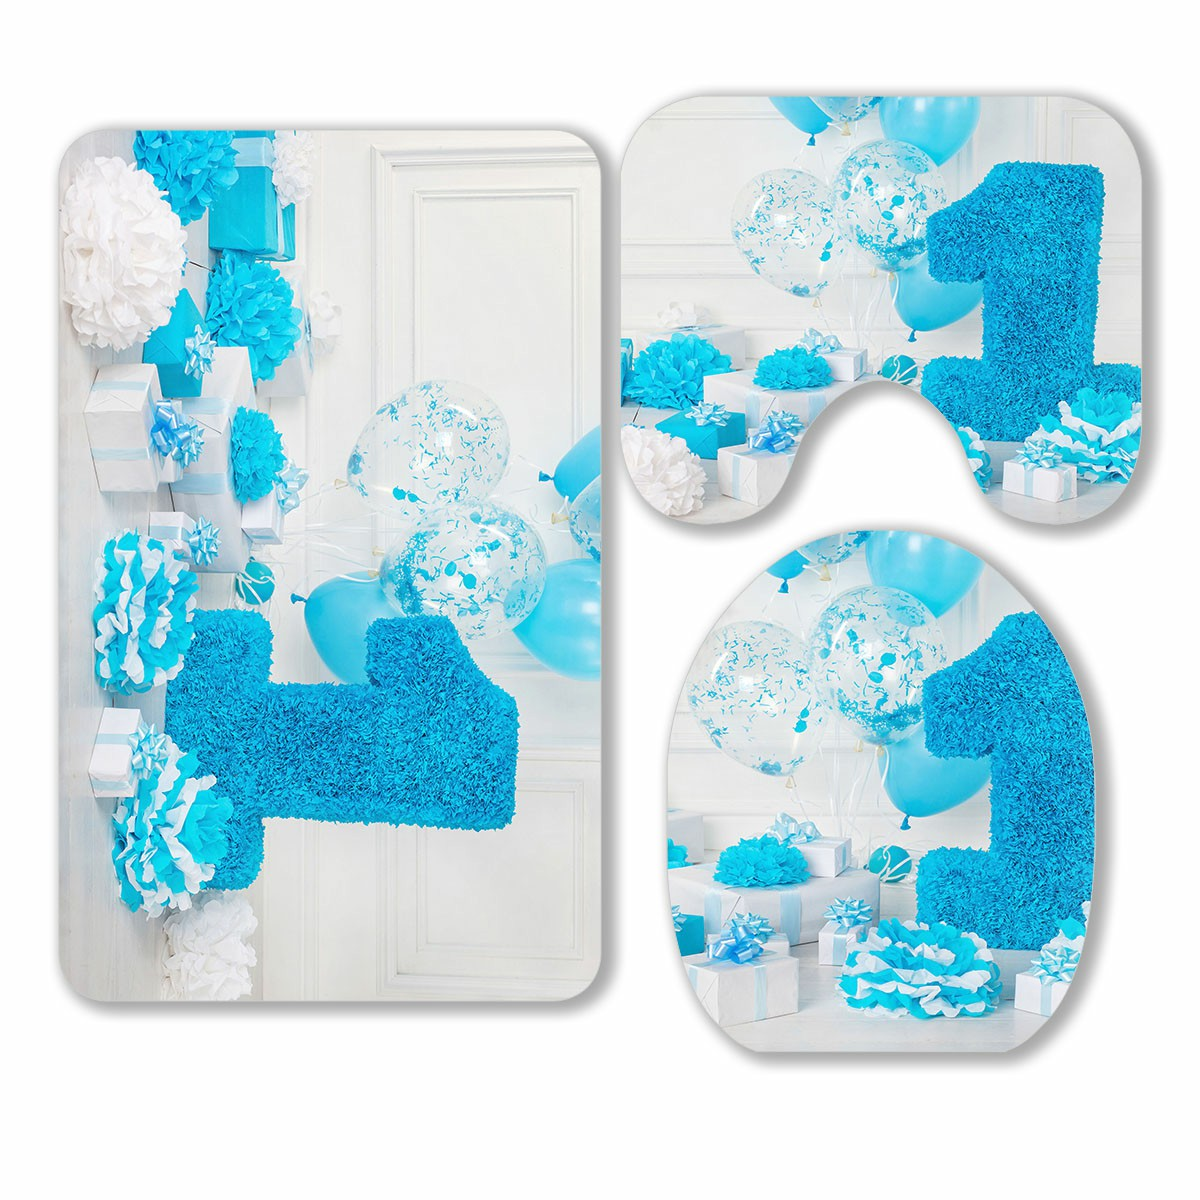 Eczjnt Decorated Number 1 For A Birthday 3 Piece Bathroom Rugs Set Bath Rug Contour Mat And Toilet Lid Cover Walmart Com Walmart Com